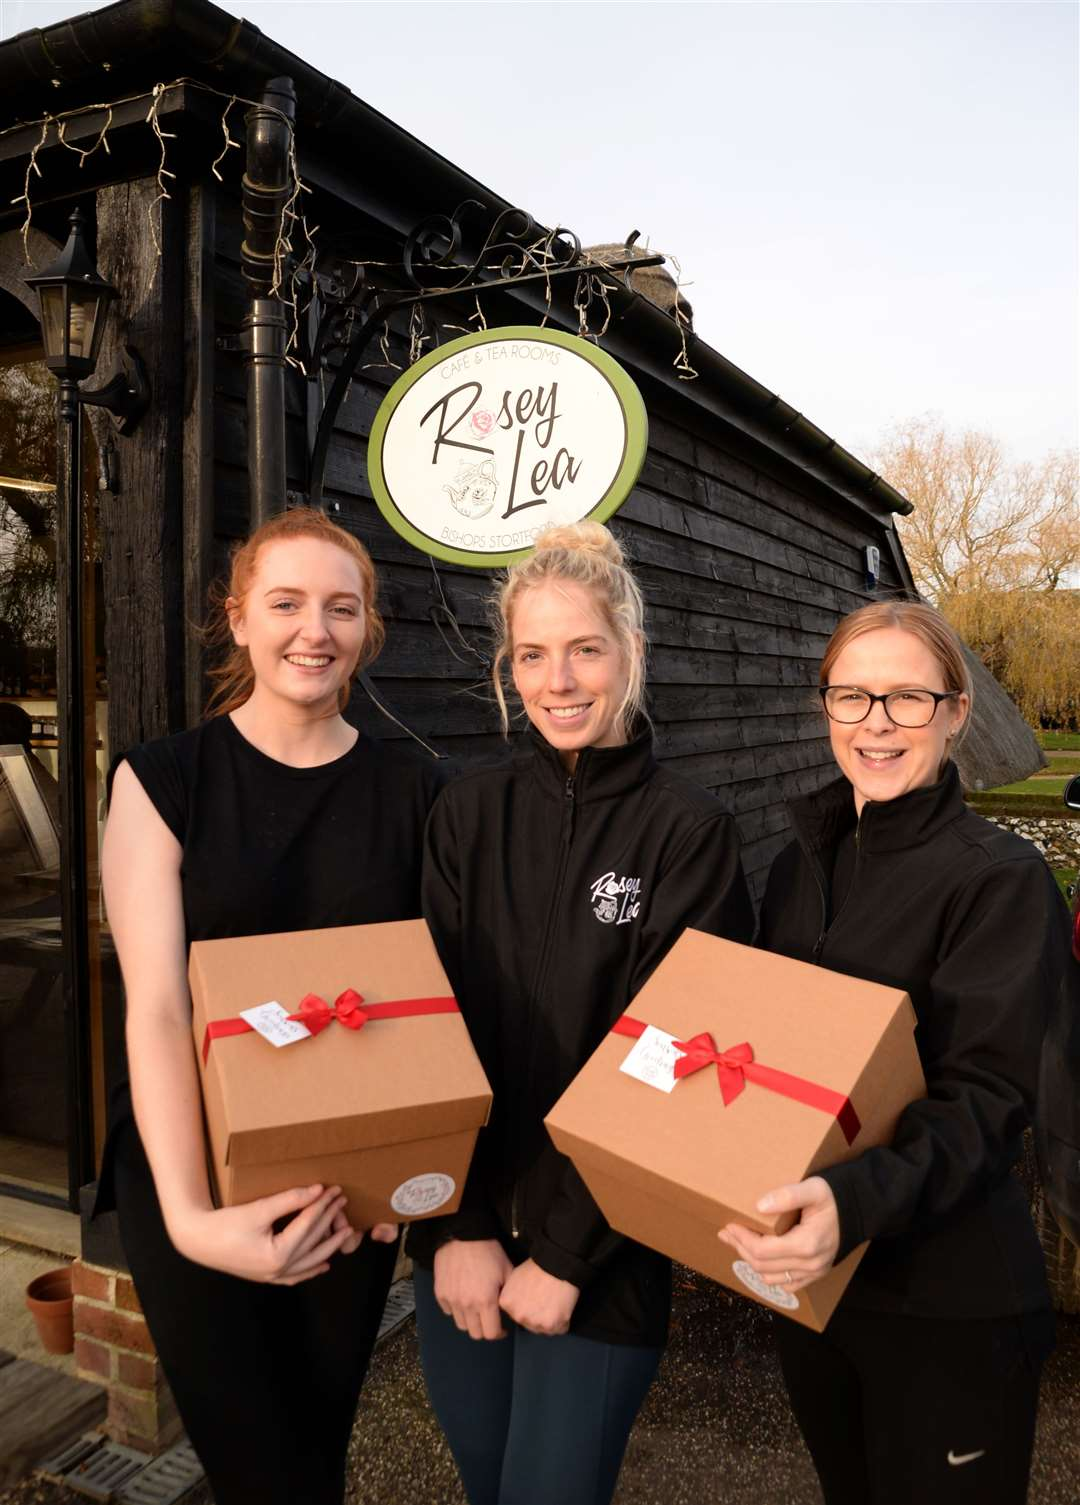 Rosey Lea, Wickham Hall, Bishop's Stortford – Leanne Gregory, centre, with staff members Sadie Yarnold and Erin Wilkinson. Pic: Vikki Lince (22123199)